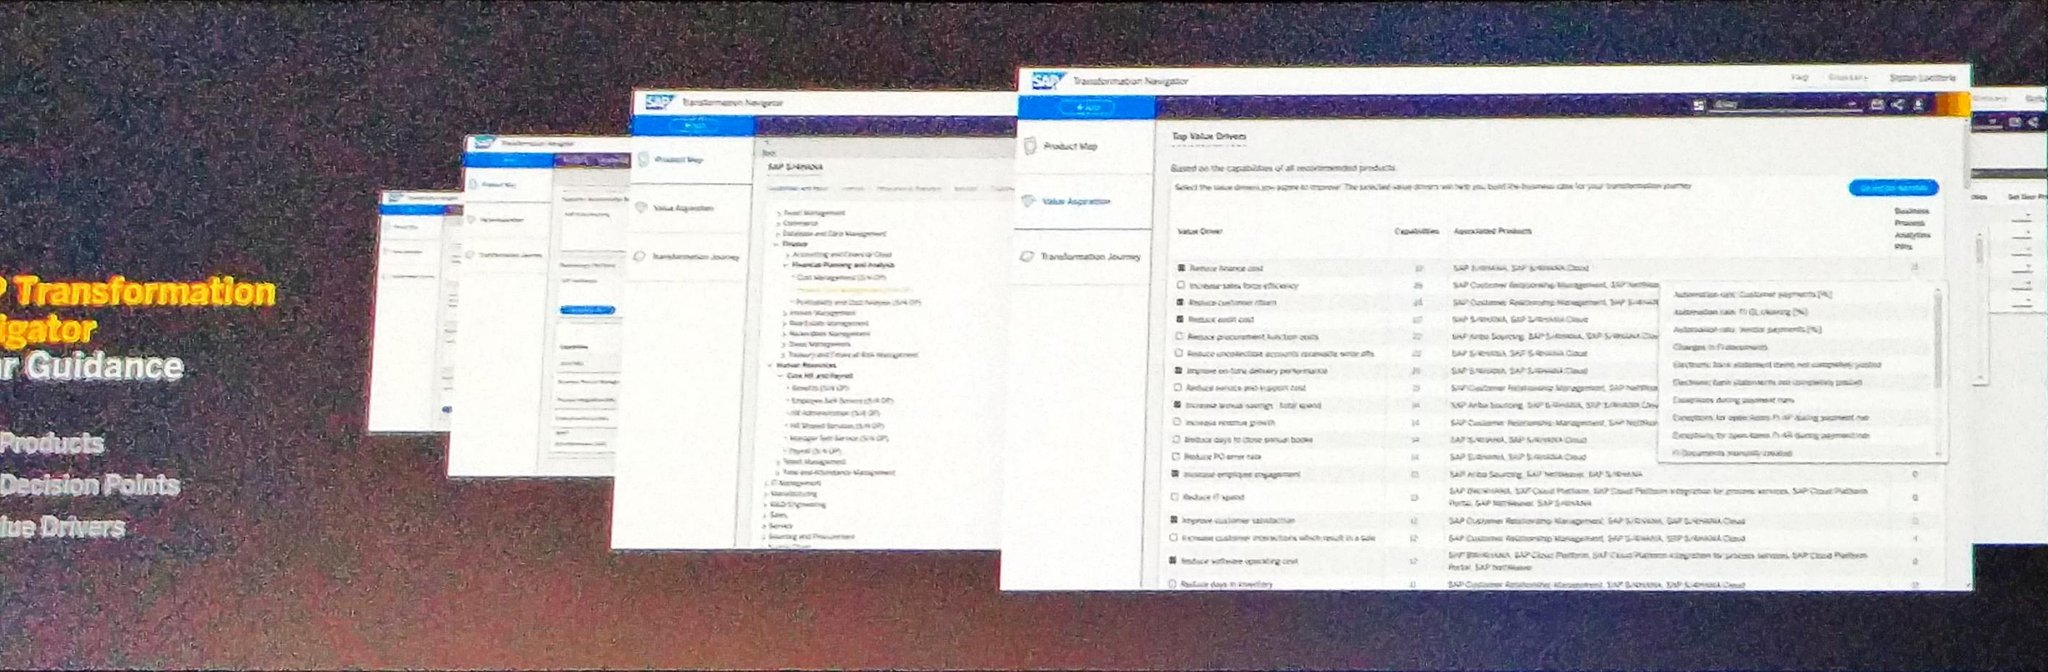 Plattner -  Navigator will help enterprises guidance to #S4HANA #SAPPHIRENOW https://t.co/mpdAj7r7v6